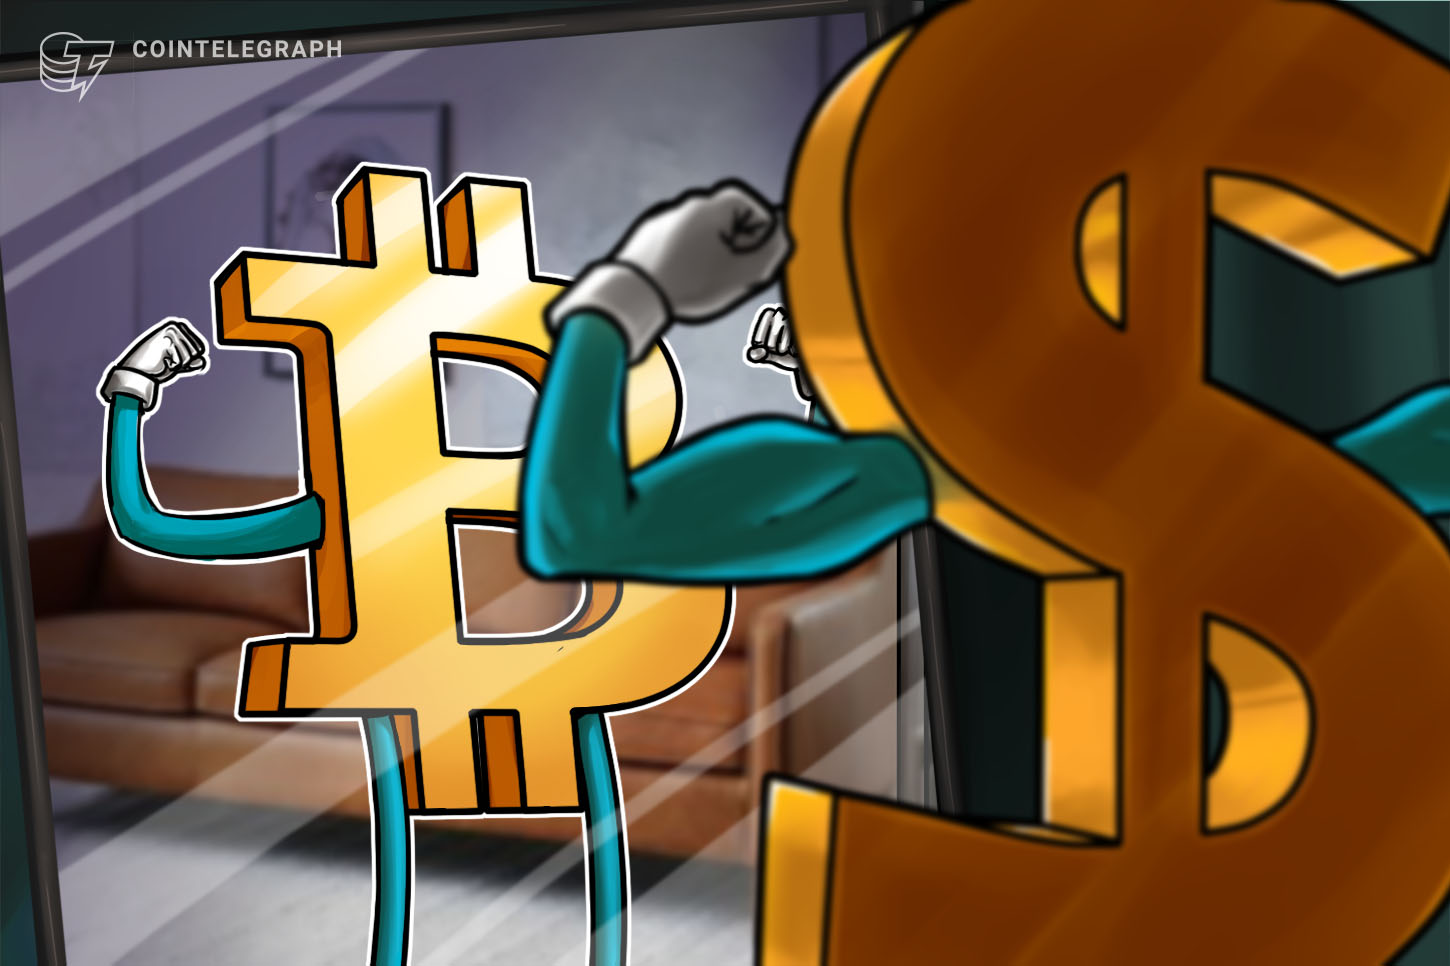 Data suggests the strong US dollar makes Bitcoin weaker argument is flawed